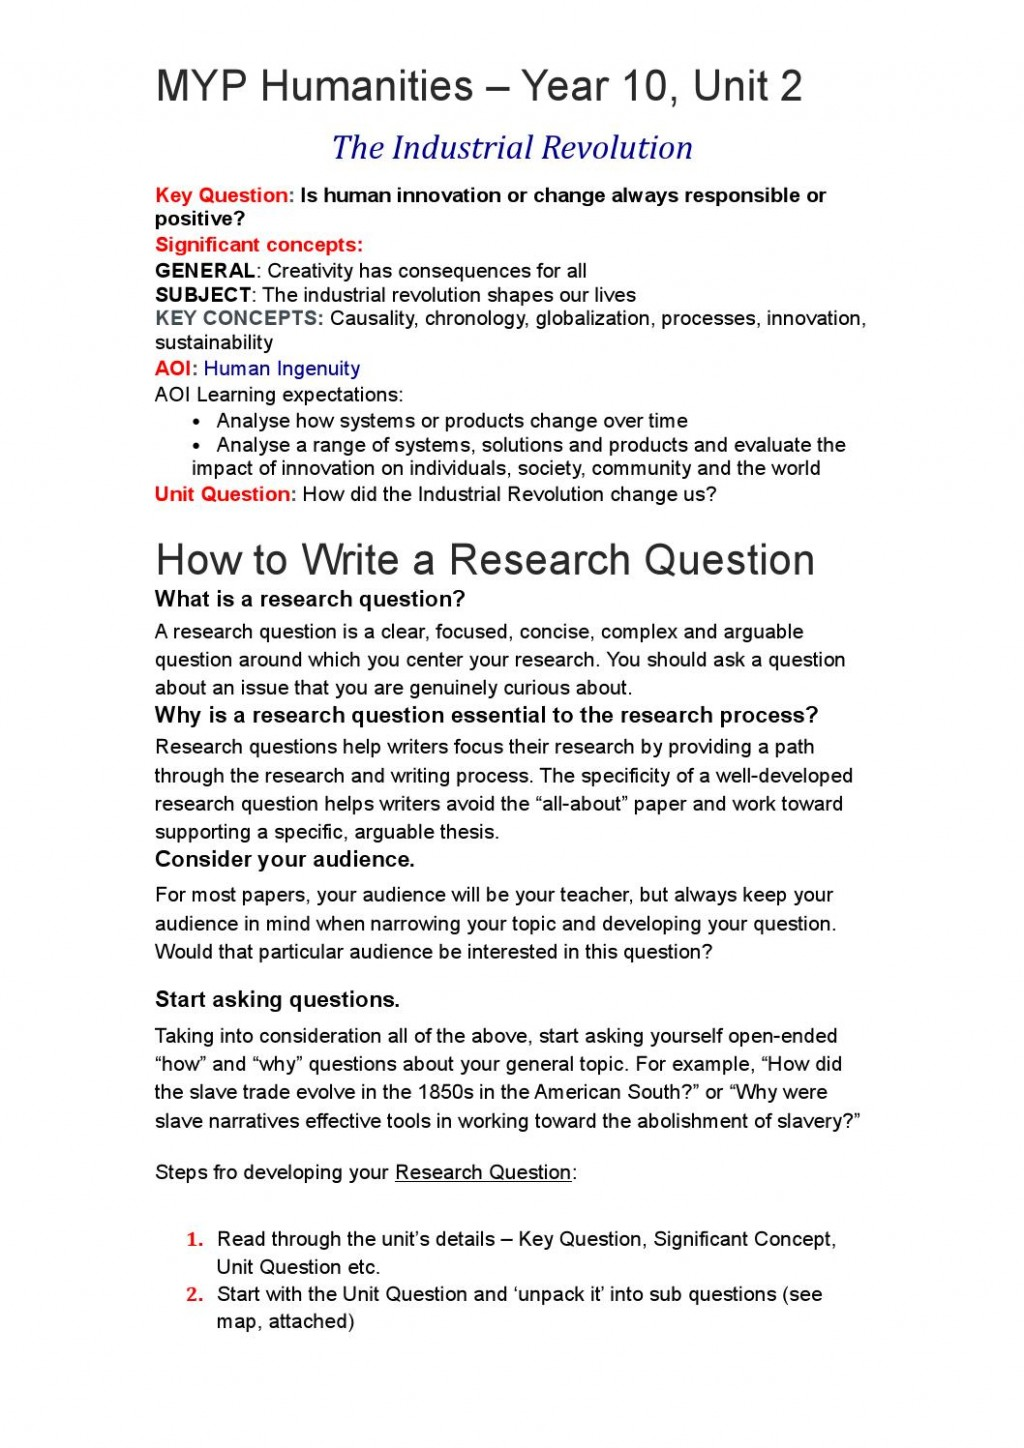 015 Page 1 Questions For Research Formidable Paper Defense Inquiry Large